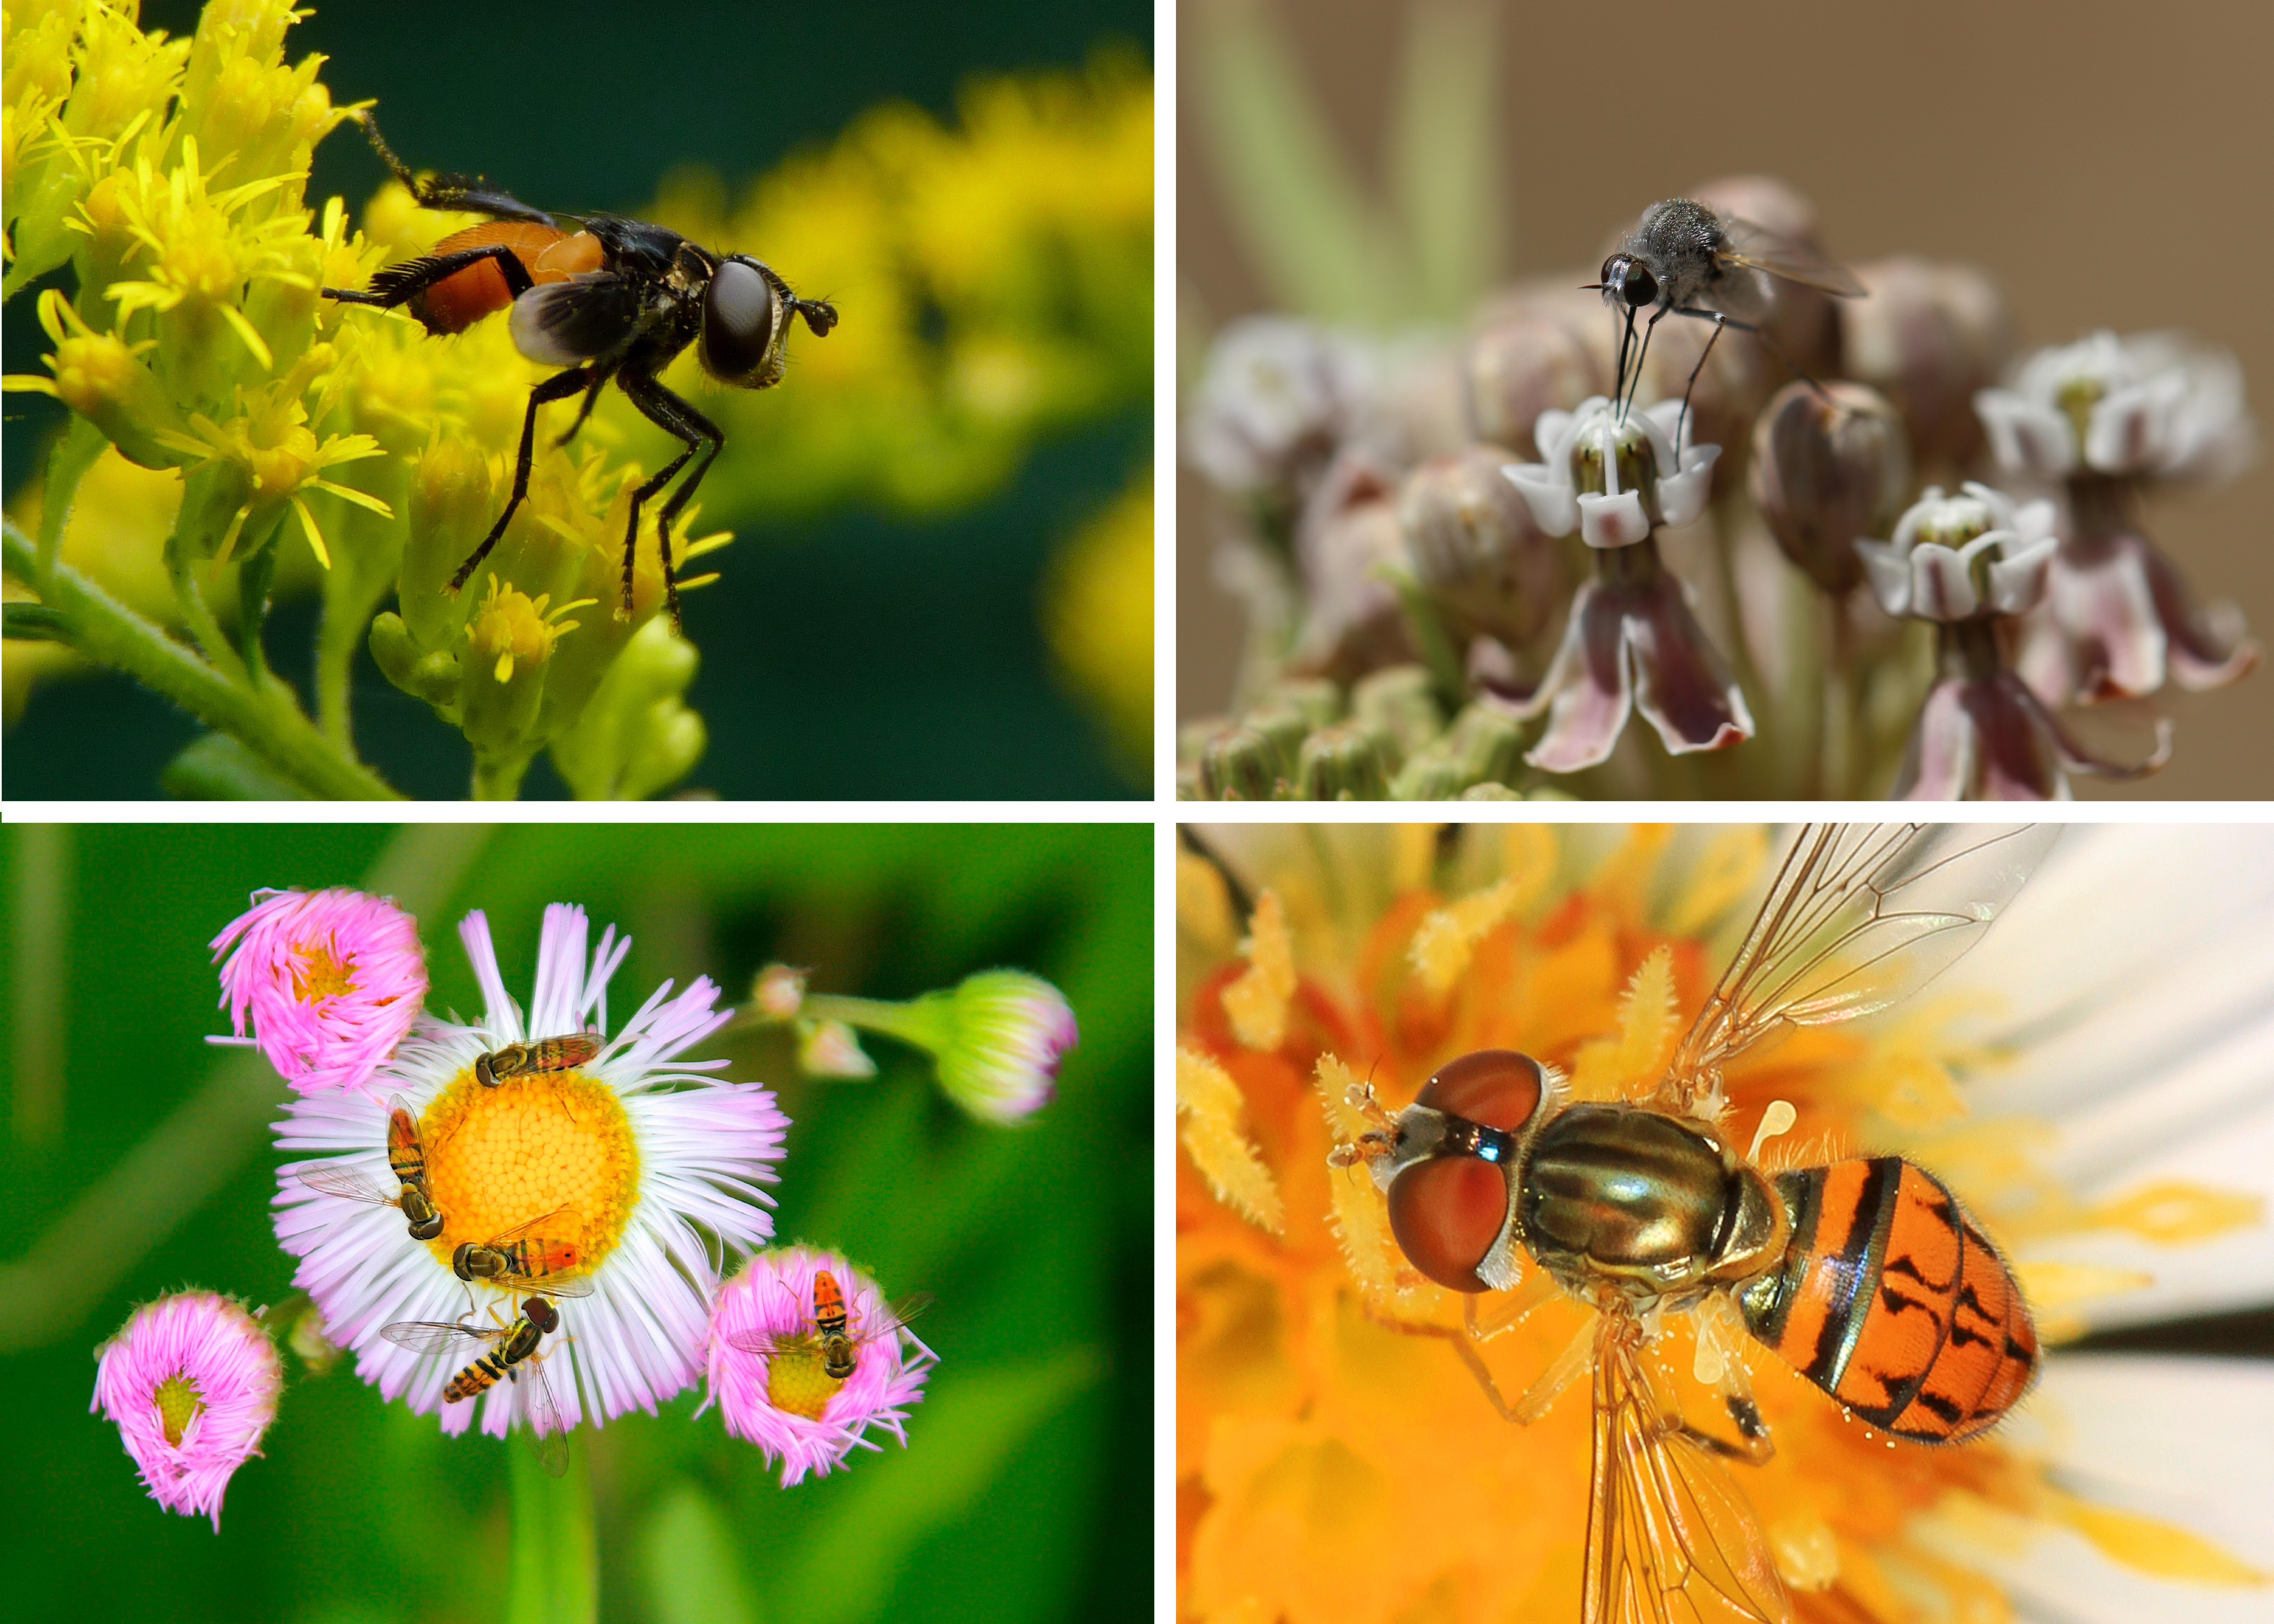 A colorful assortment of fly images demonstrates the diversity of Diptera.